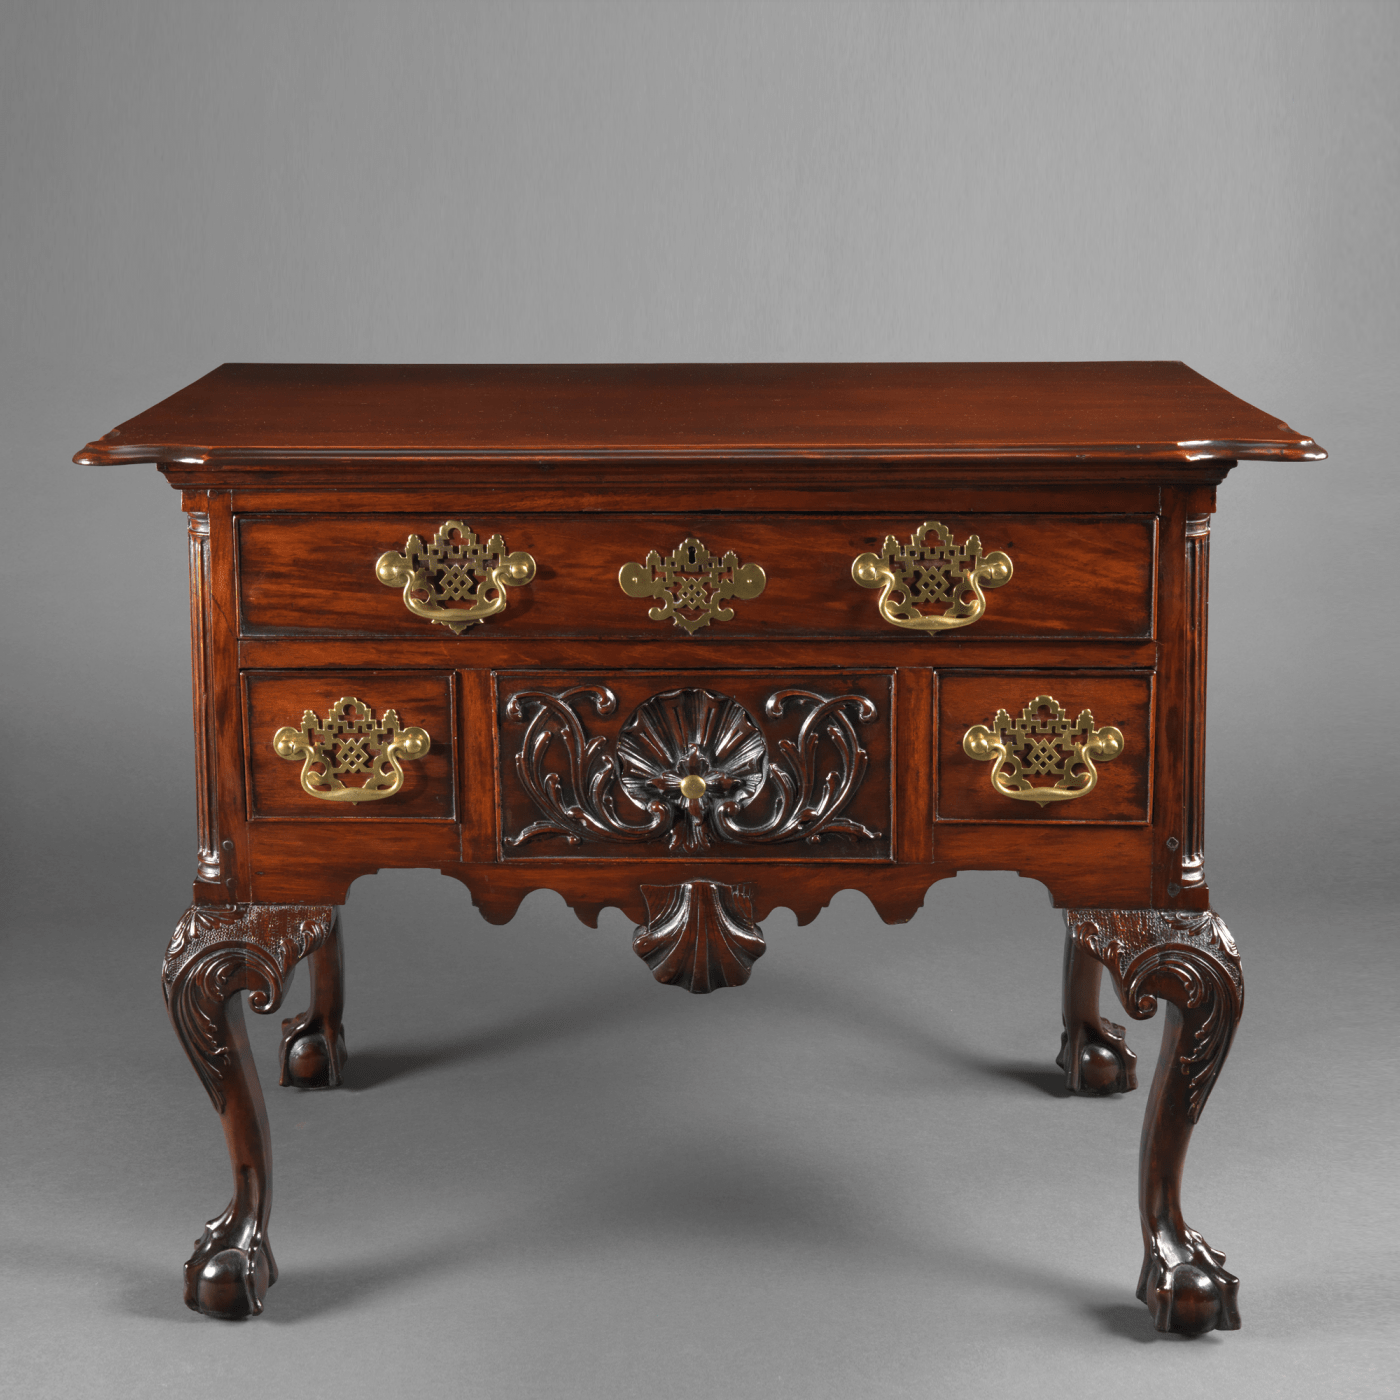 Lowboy Furniture An Important Chippendale Lowboy With A Carved Shell